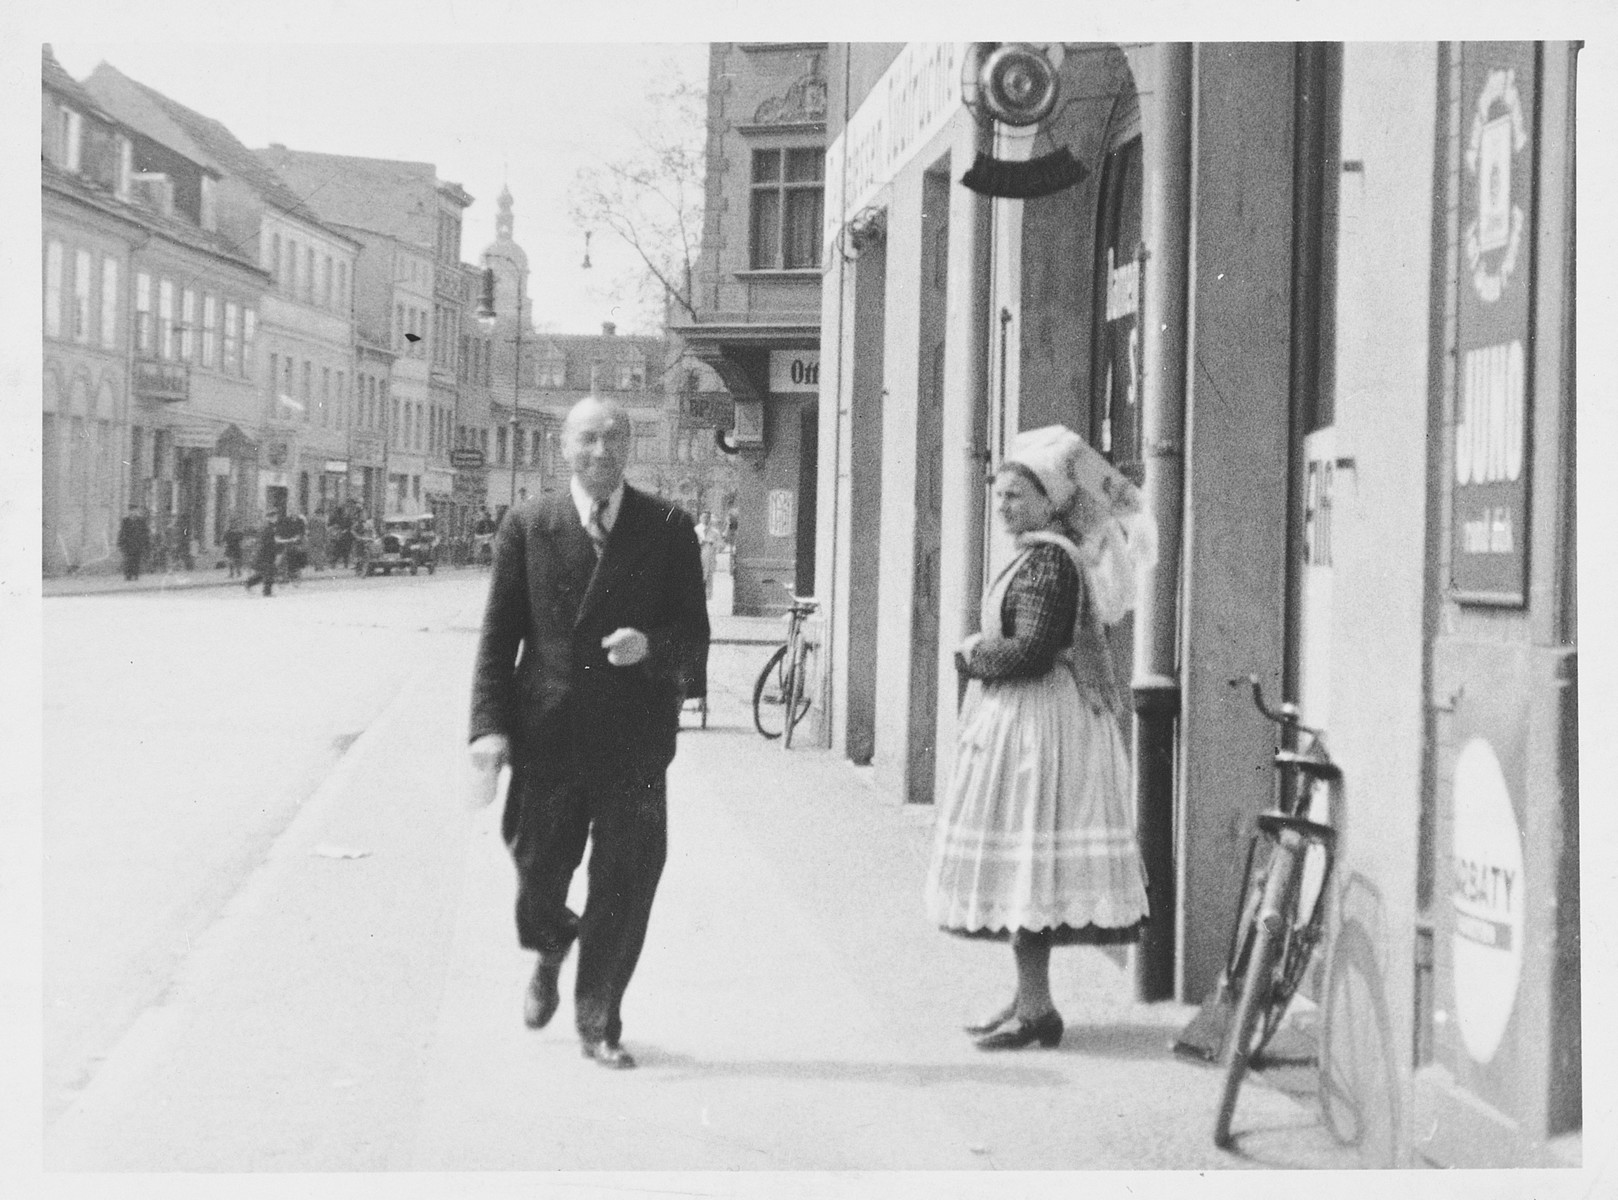 A Jewish doctor walks down a street in Mannheim, Germany.  Pictured is Dr. Hermann Meyer.